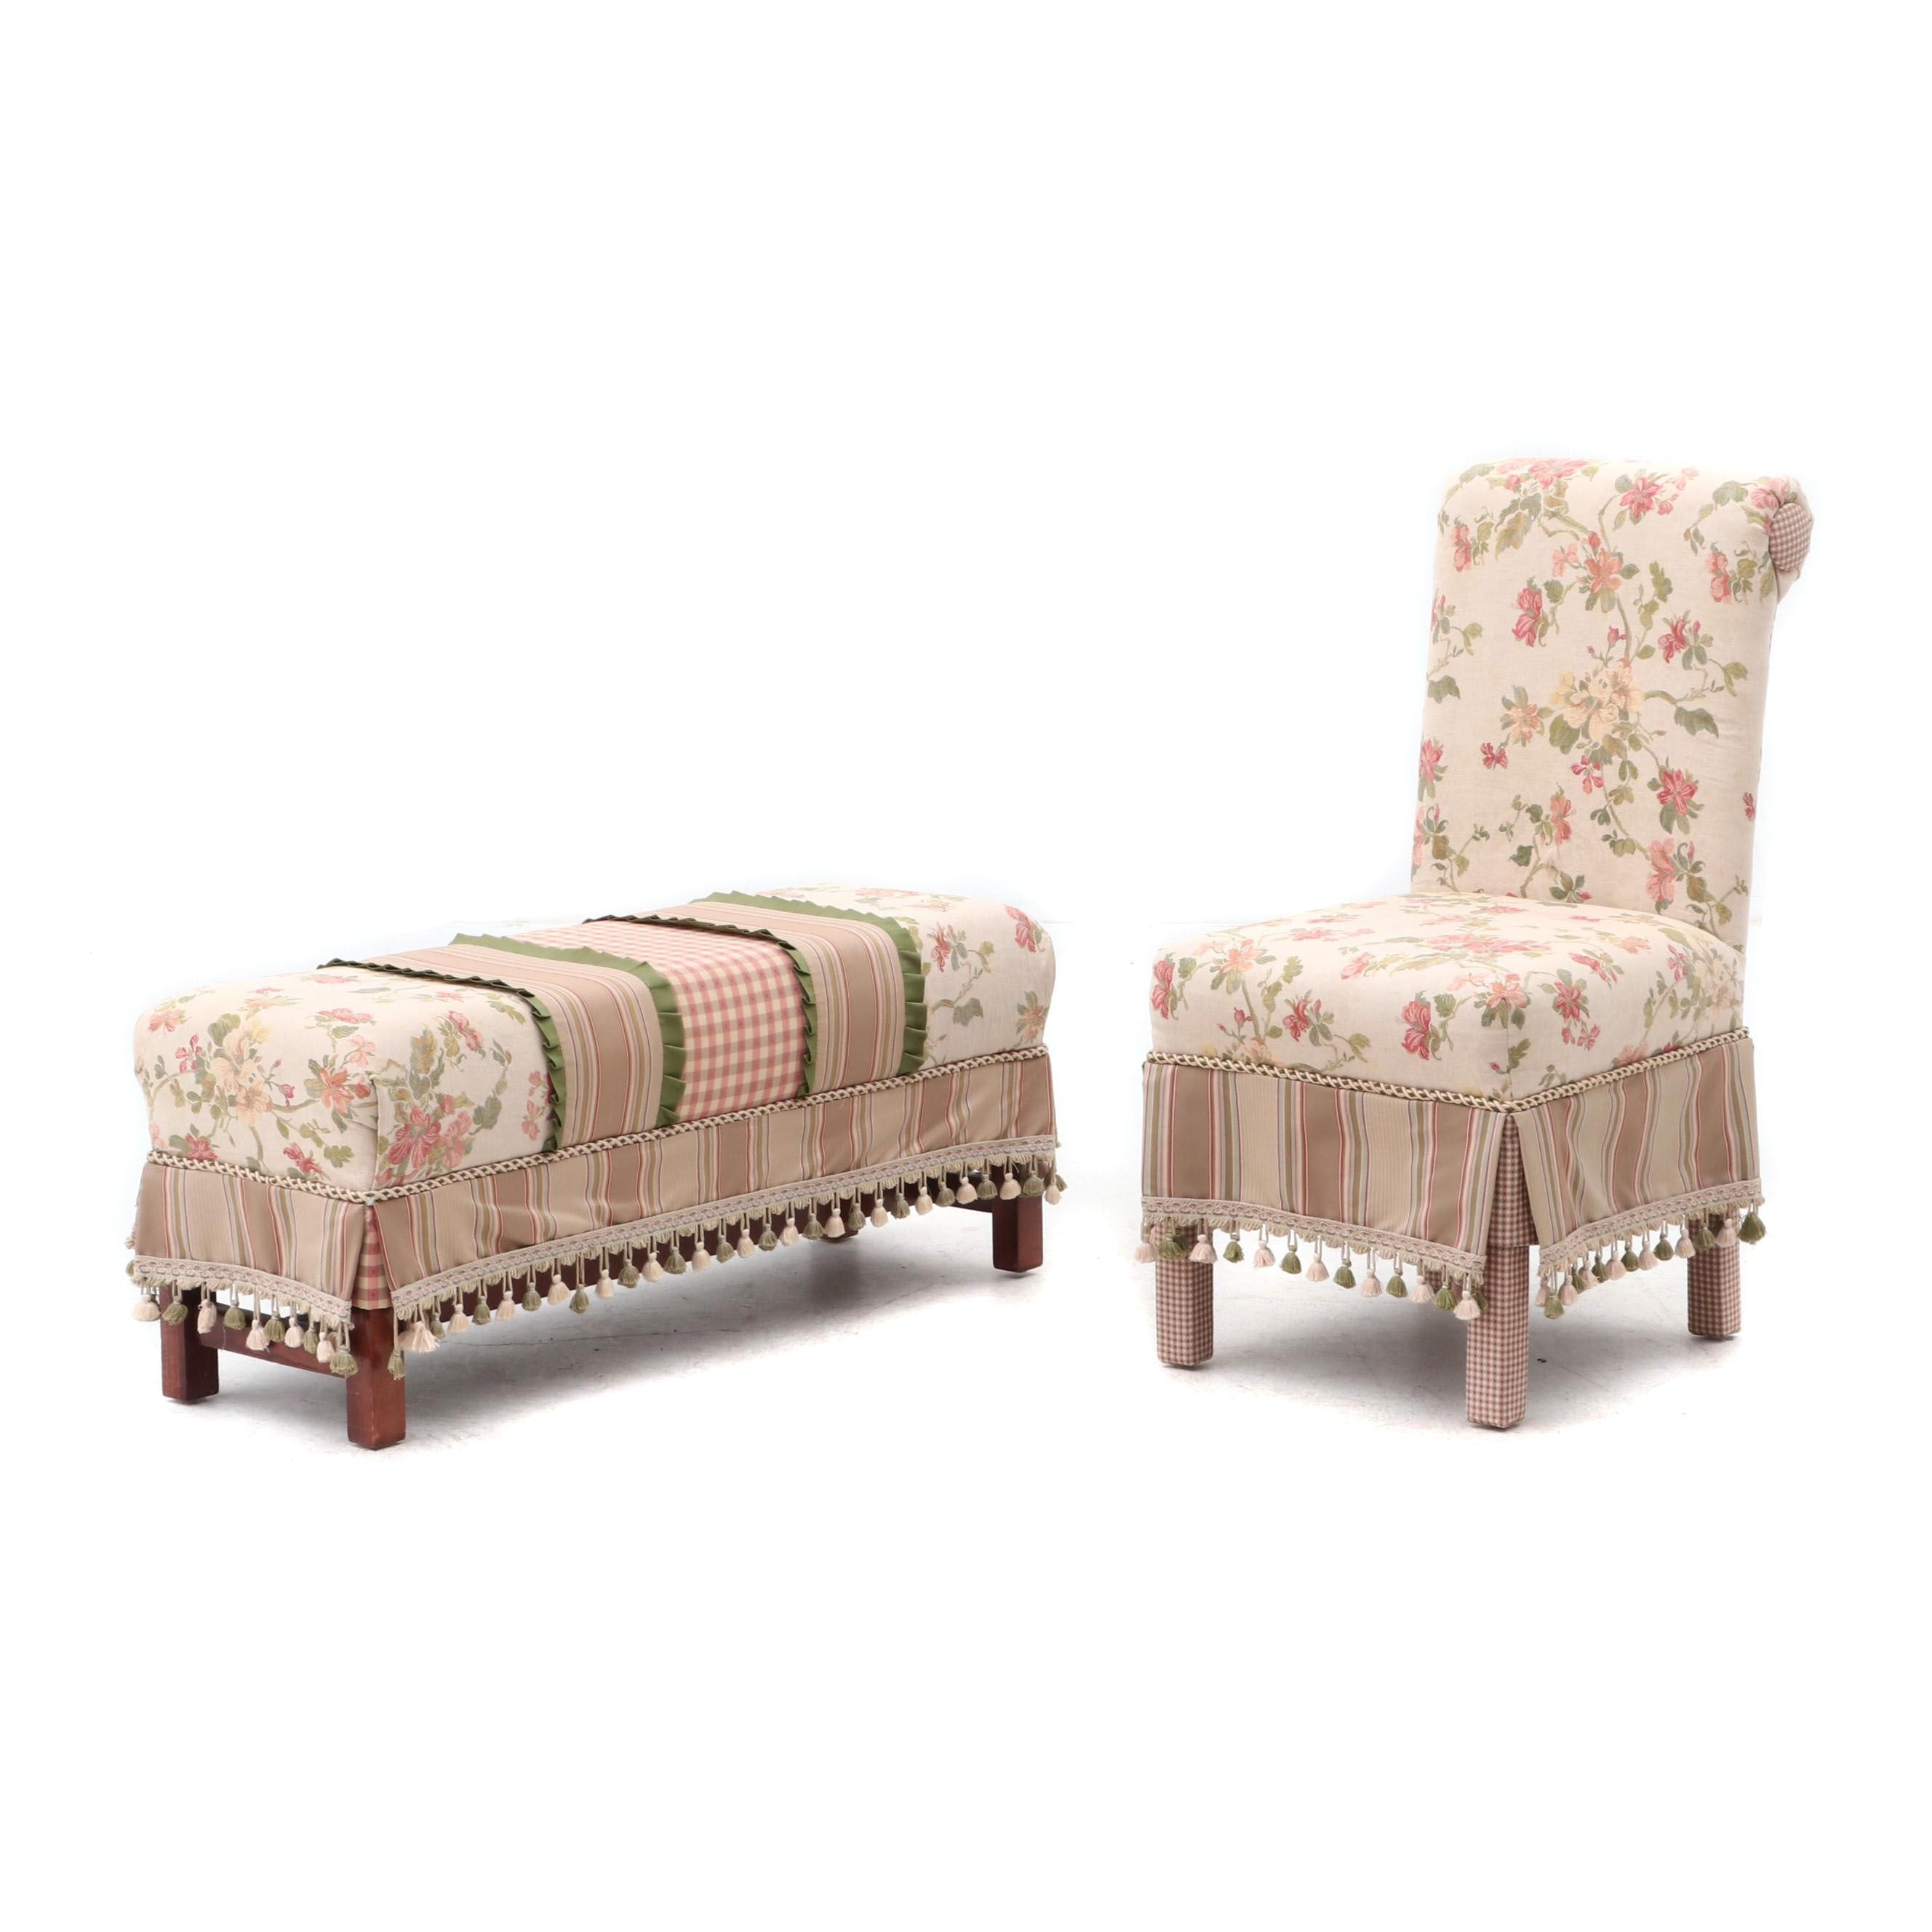 Upholstered Side Chair with Coordinating Bench